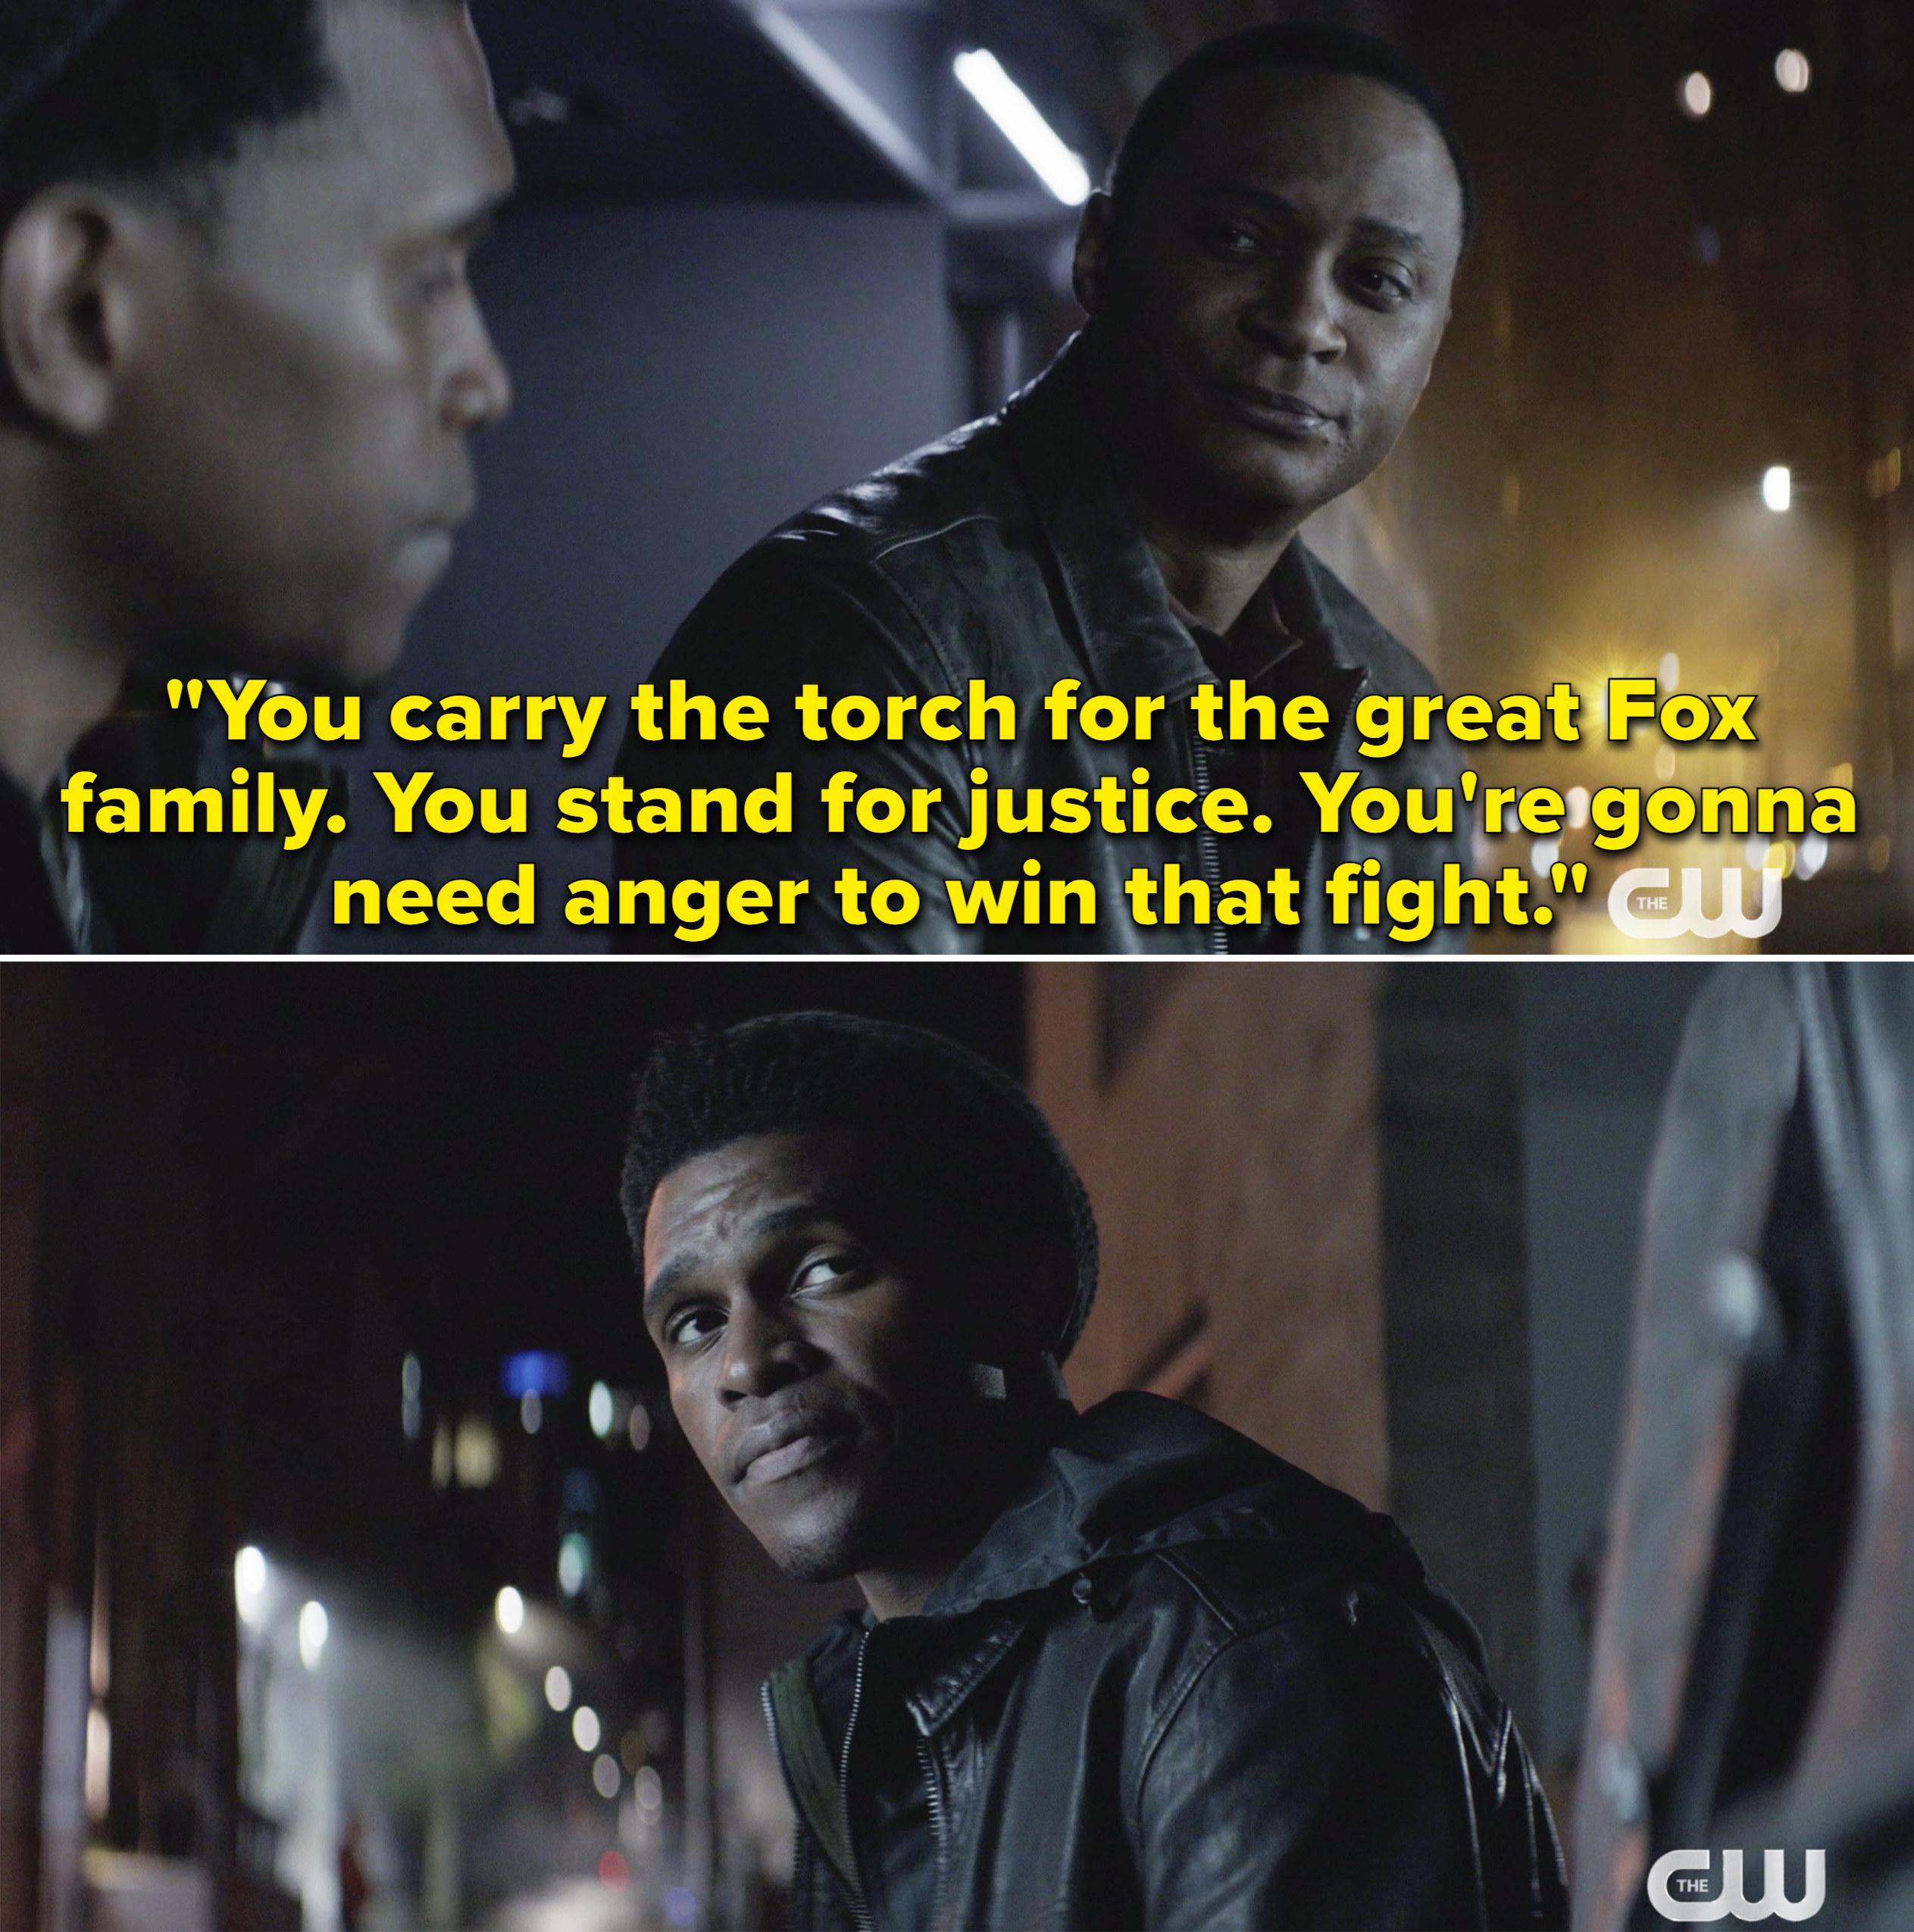 """Diggle telling Luke it's his job to carry on the Fox name and his anger will """"win that fight"""" for justice"""